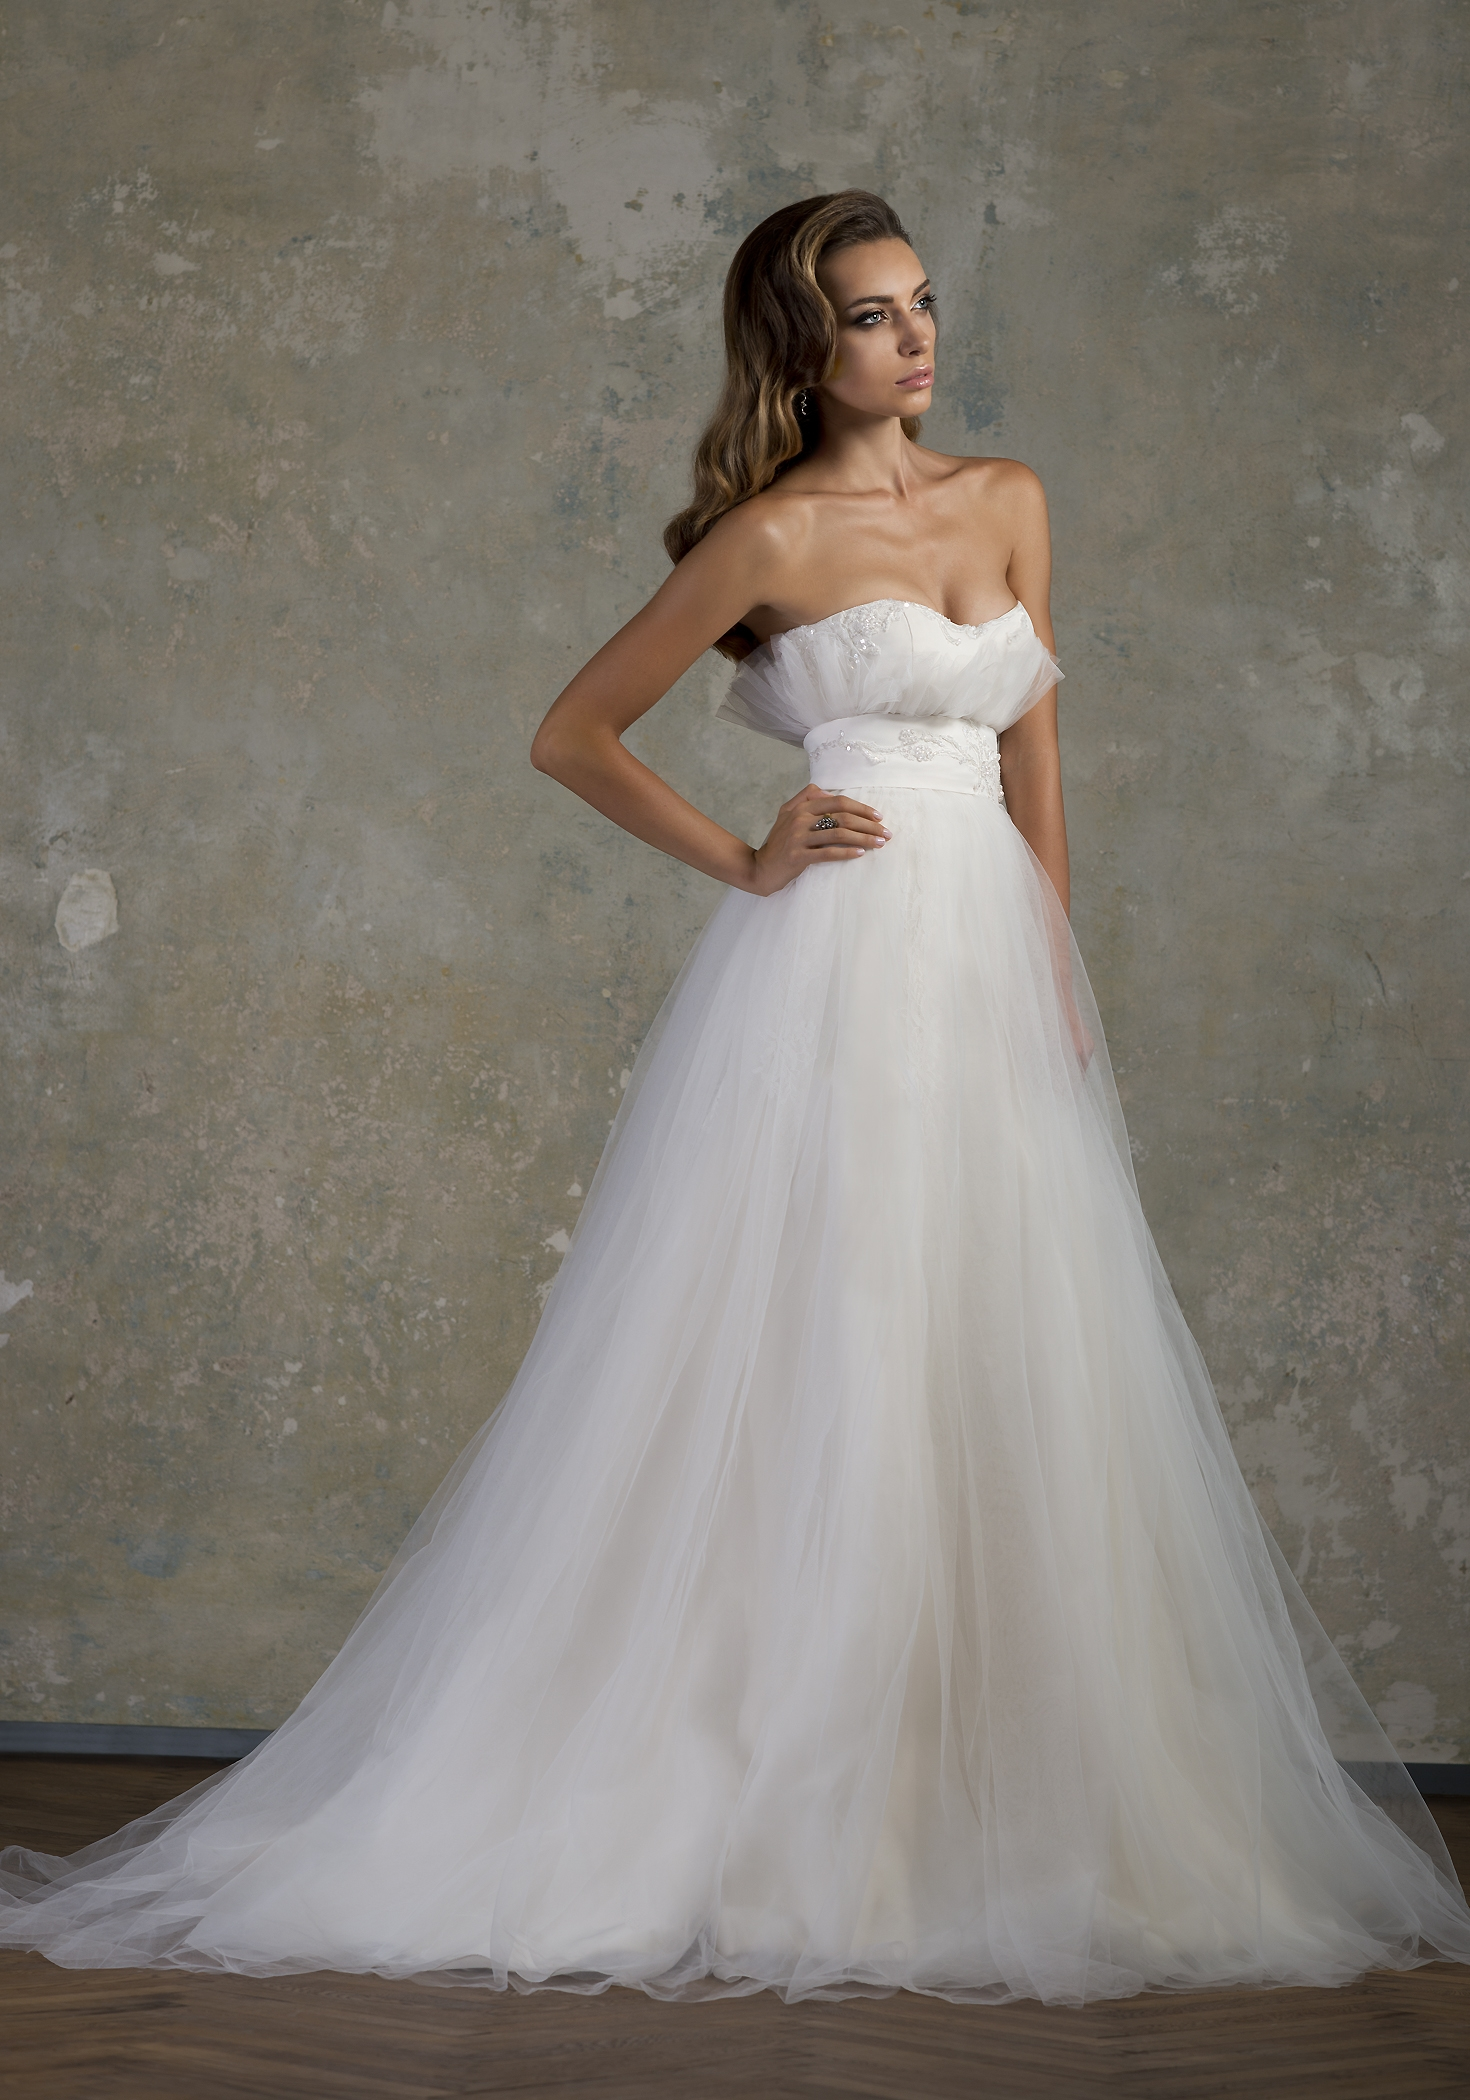 The Best Gowns From The Most In Demand Wedding Dress Designers